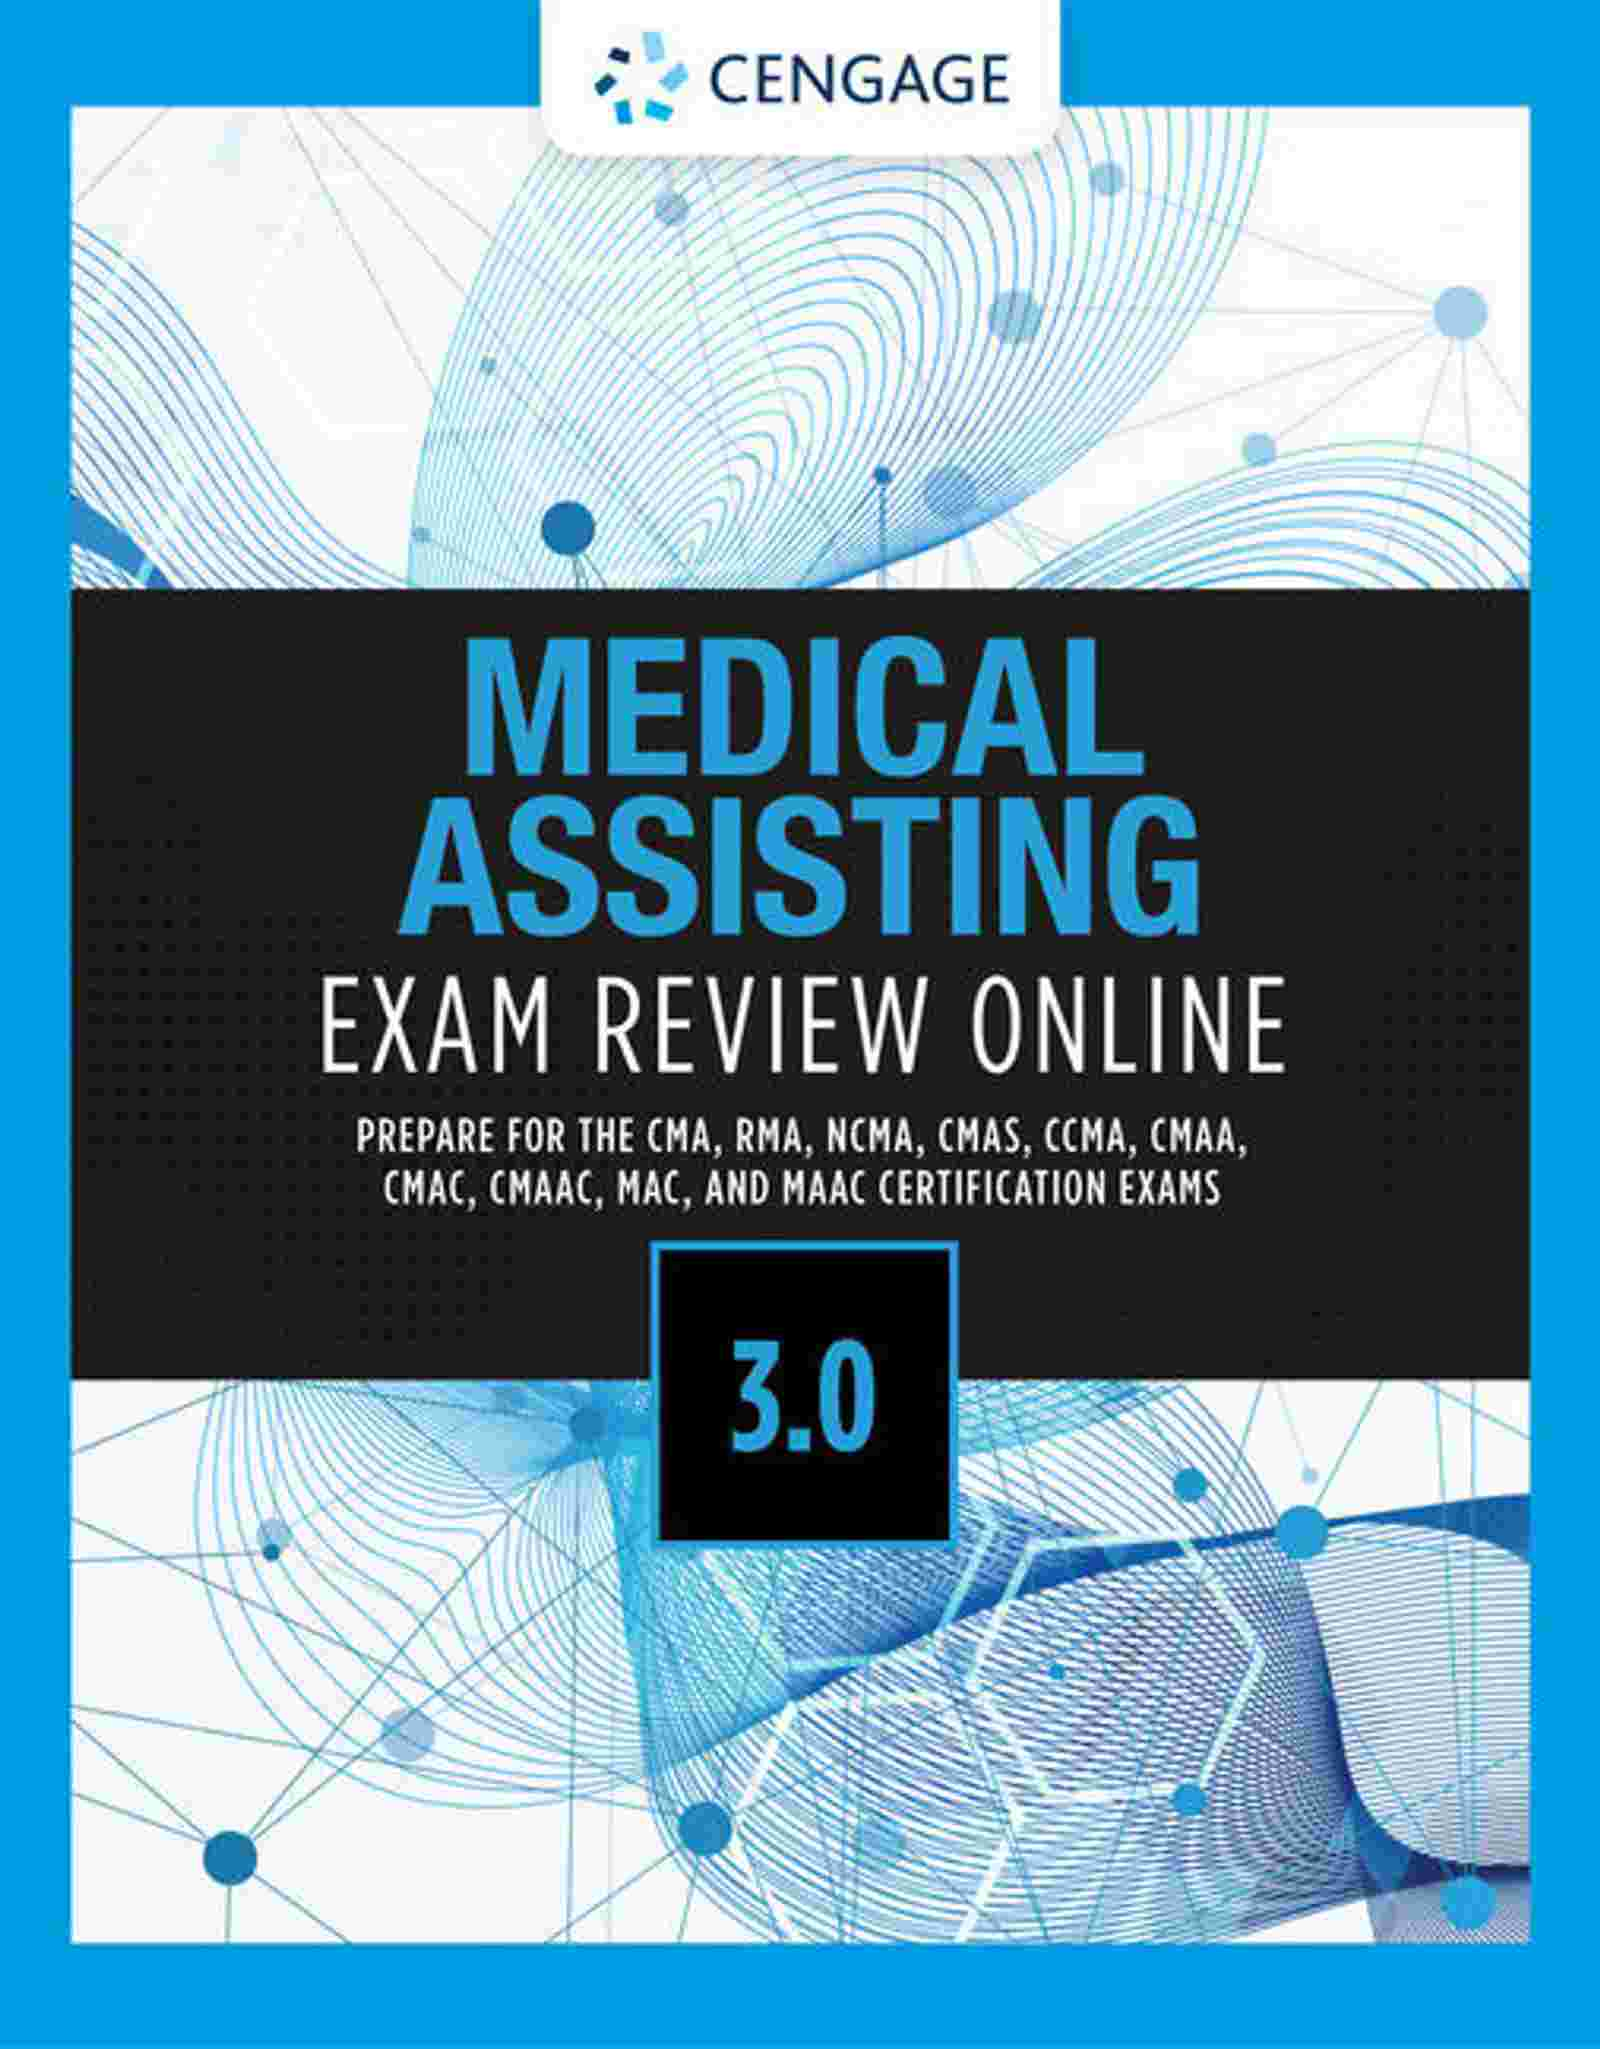 Medical Assisting Exam Review Online 3.0